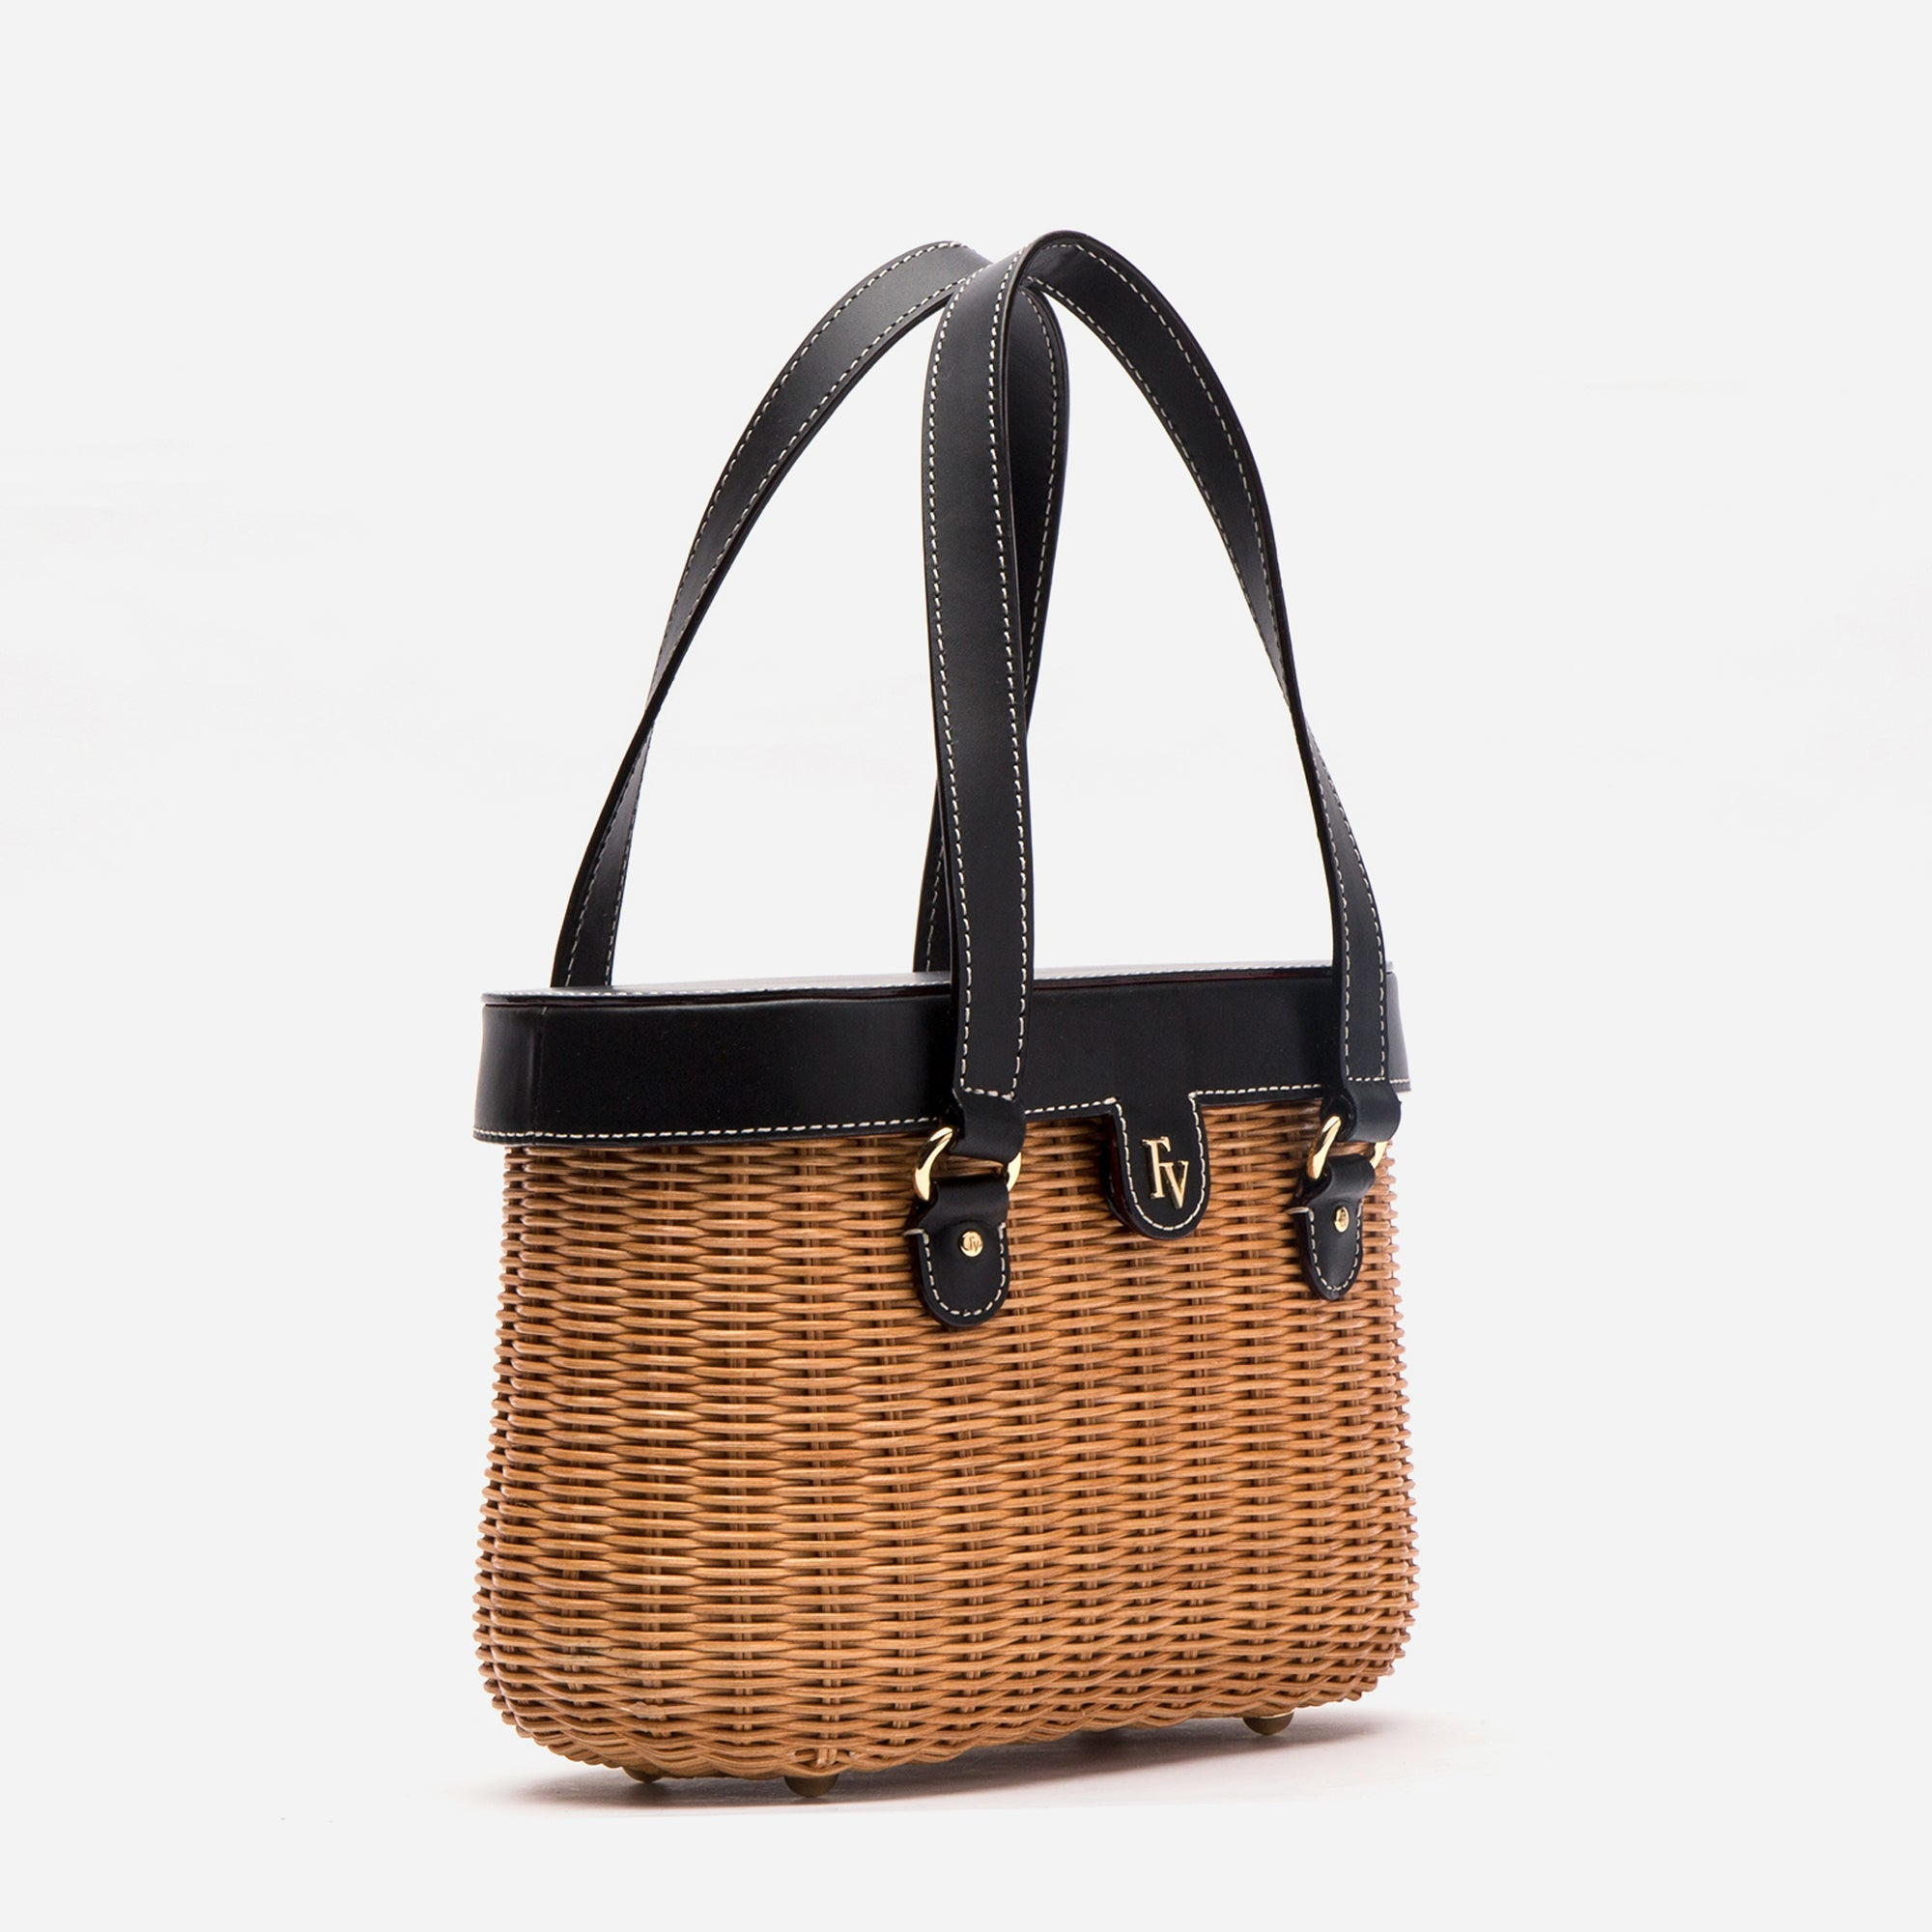 Arielle Wicker Basket Bag Black